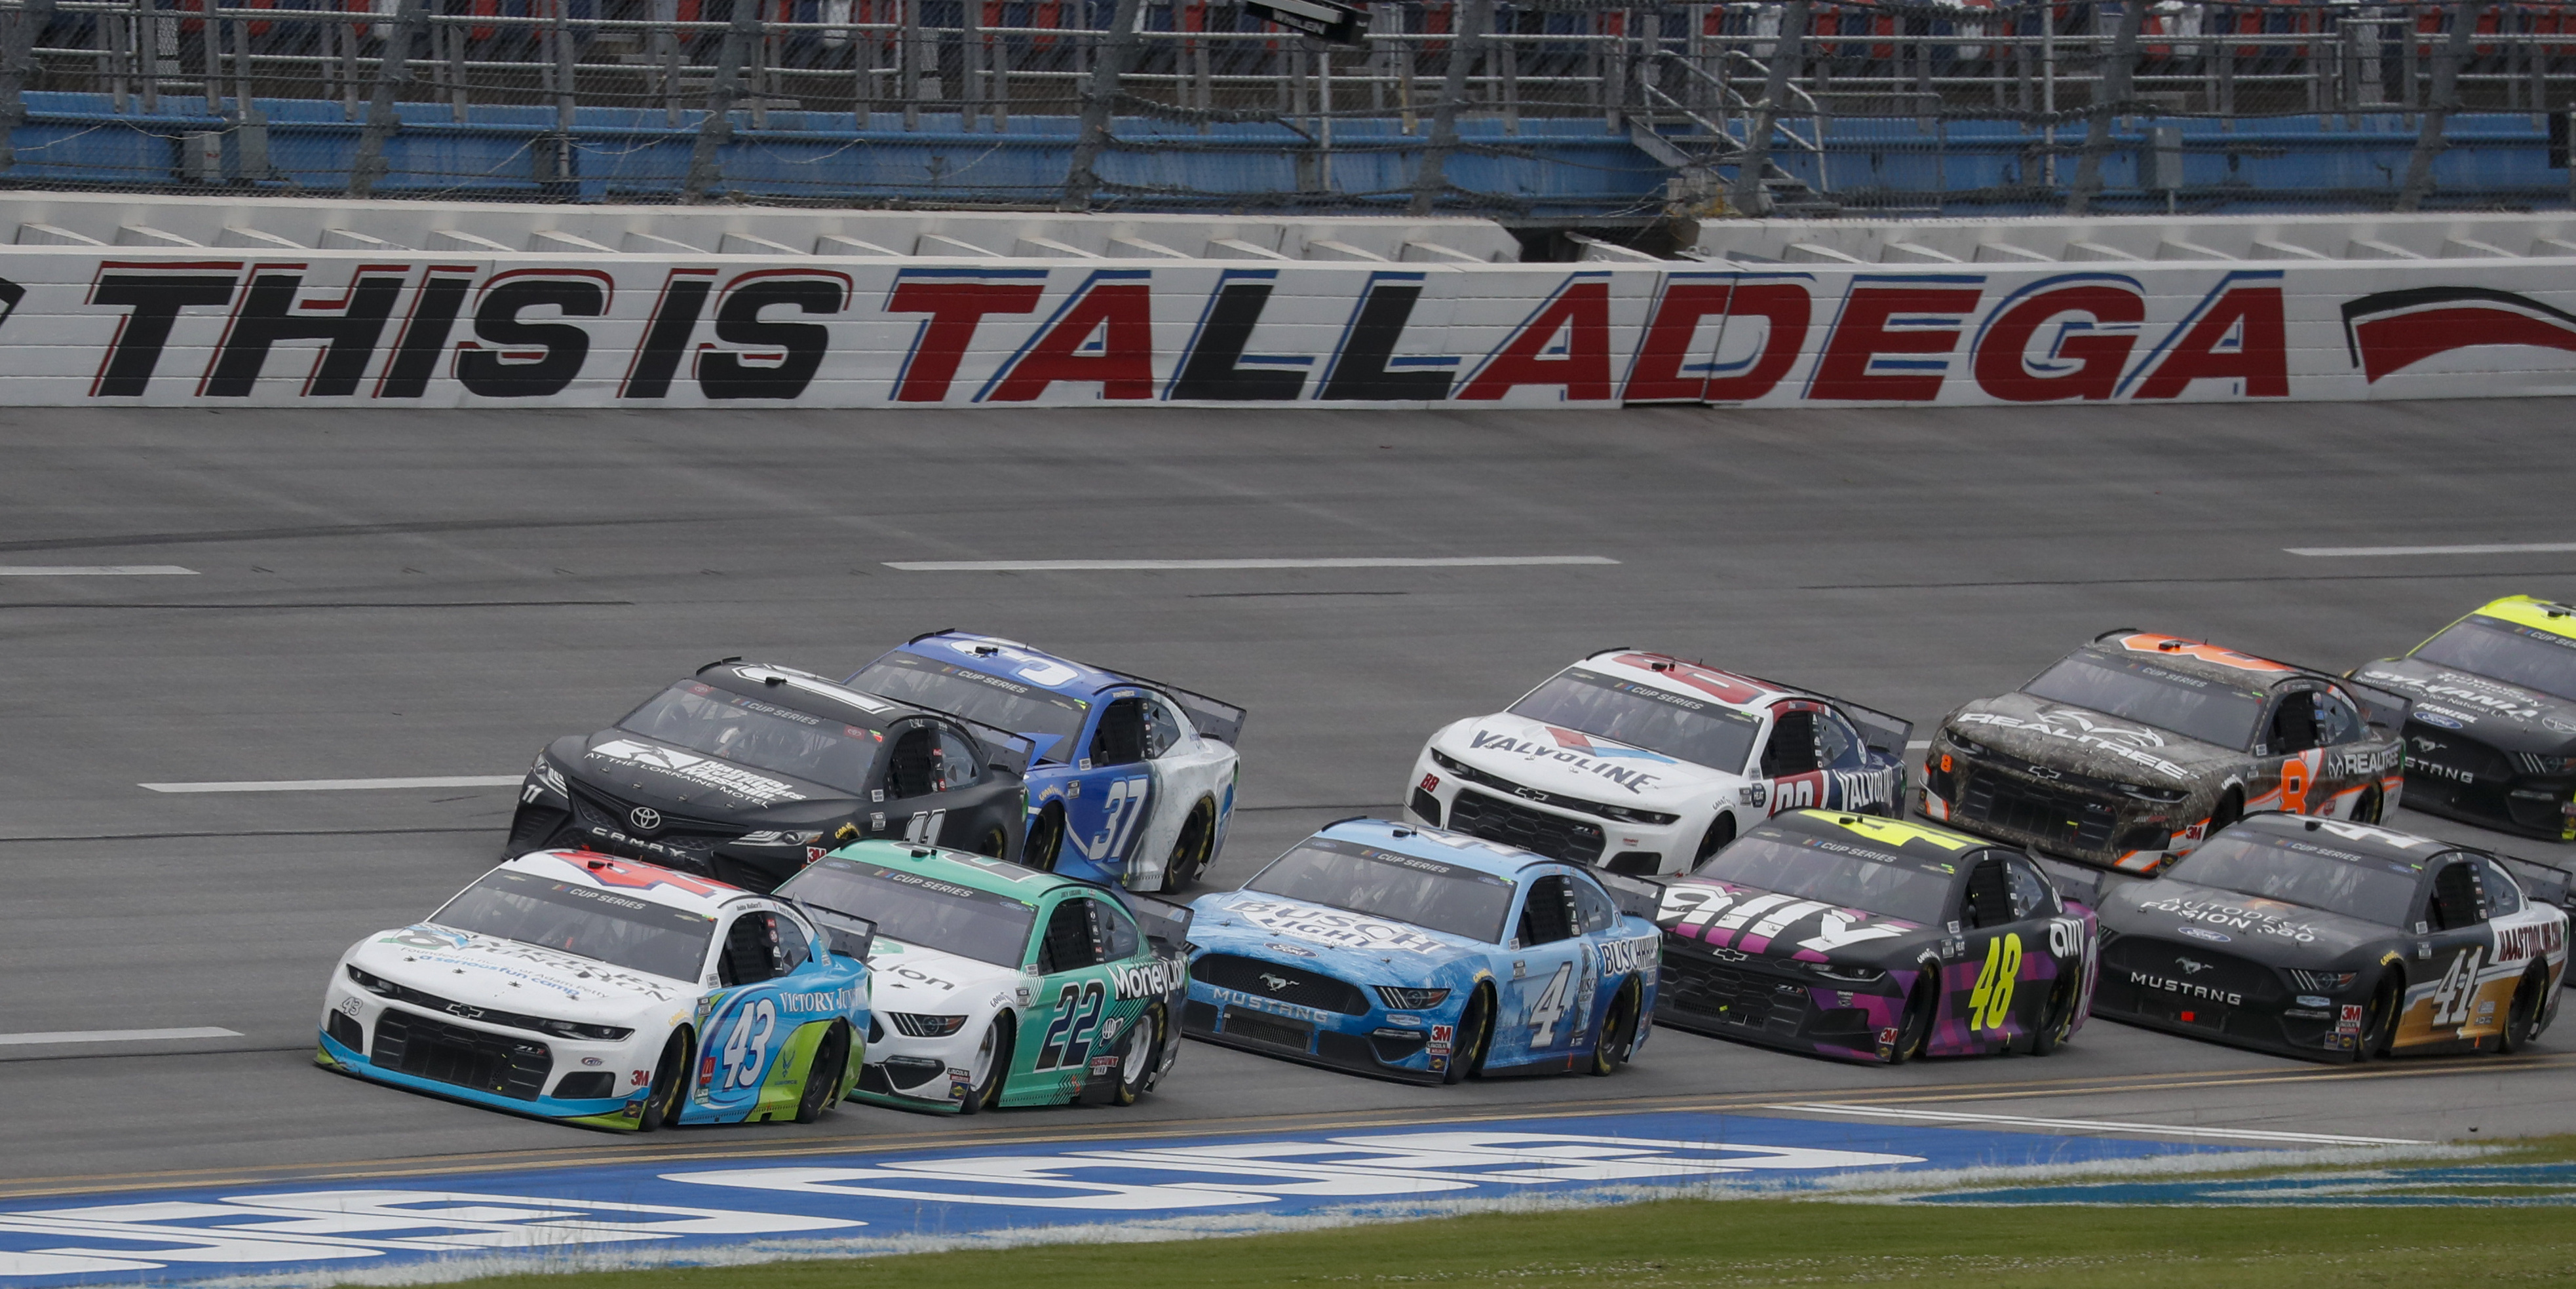 Monster Energy NASCAR Cup Series driver Bubba Wallace (43) leads the pack during a NASCAR Cup Series auto race at Talladega Superspeedway in Talladega Ala., on June 22, 2020.